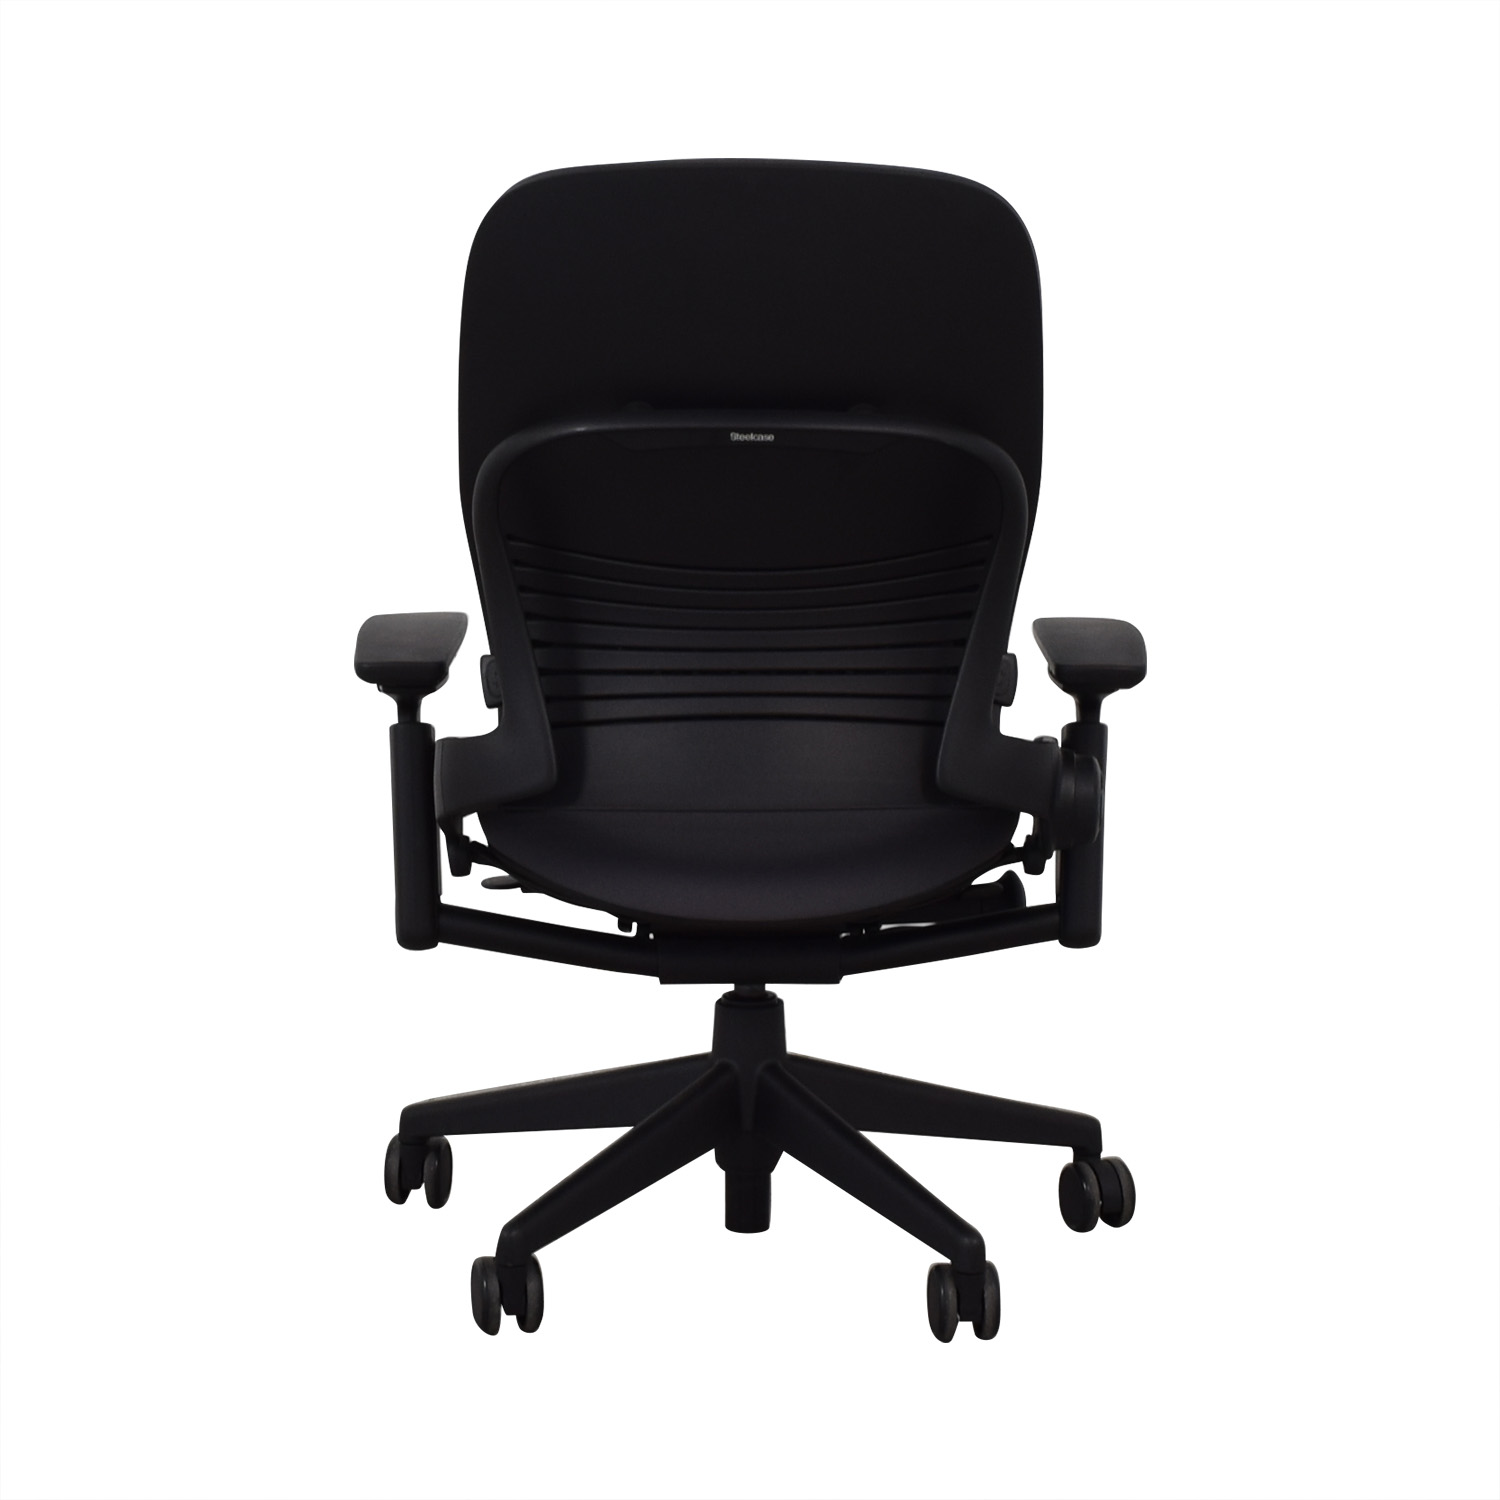 Steelcase Steelcase Leap V2 Office Chair nj